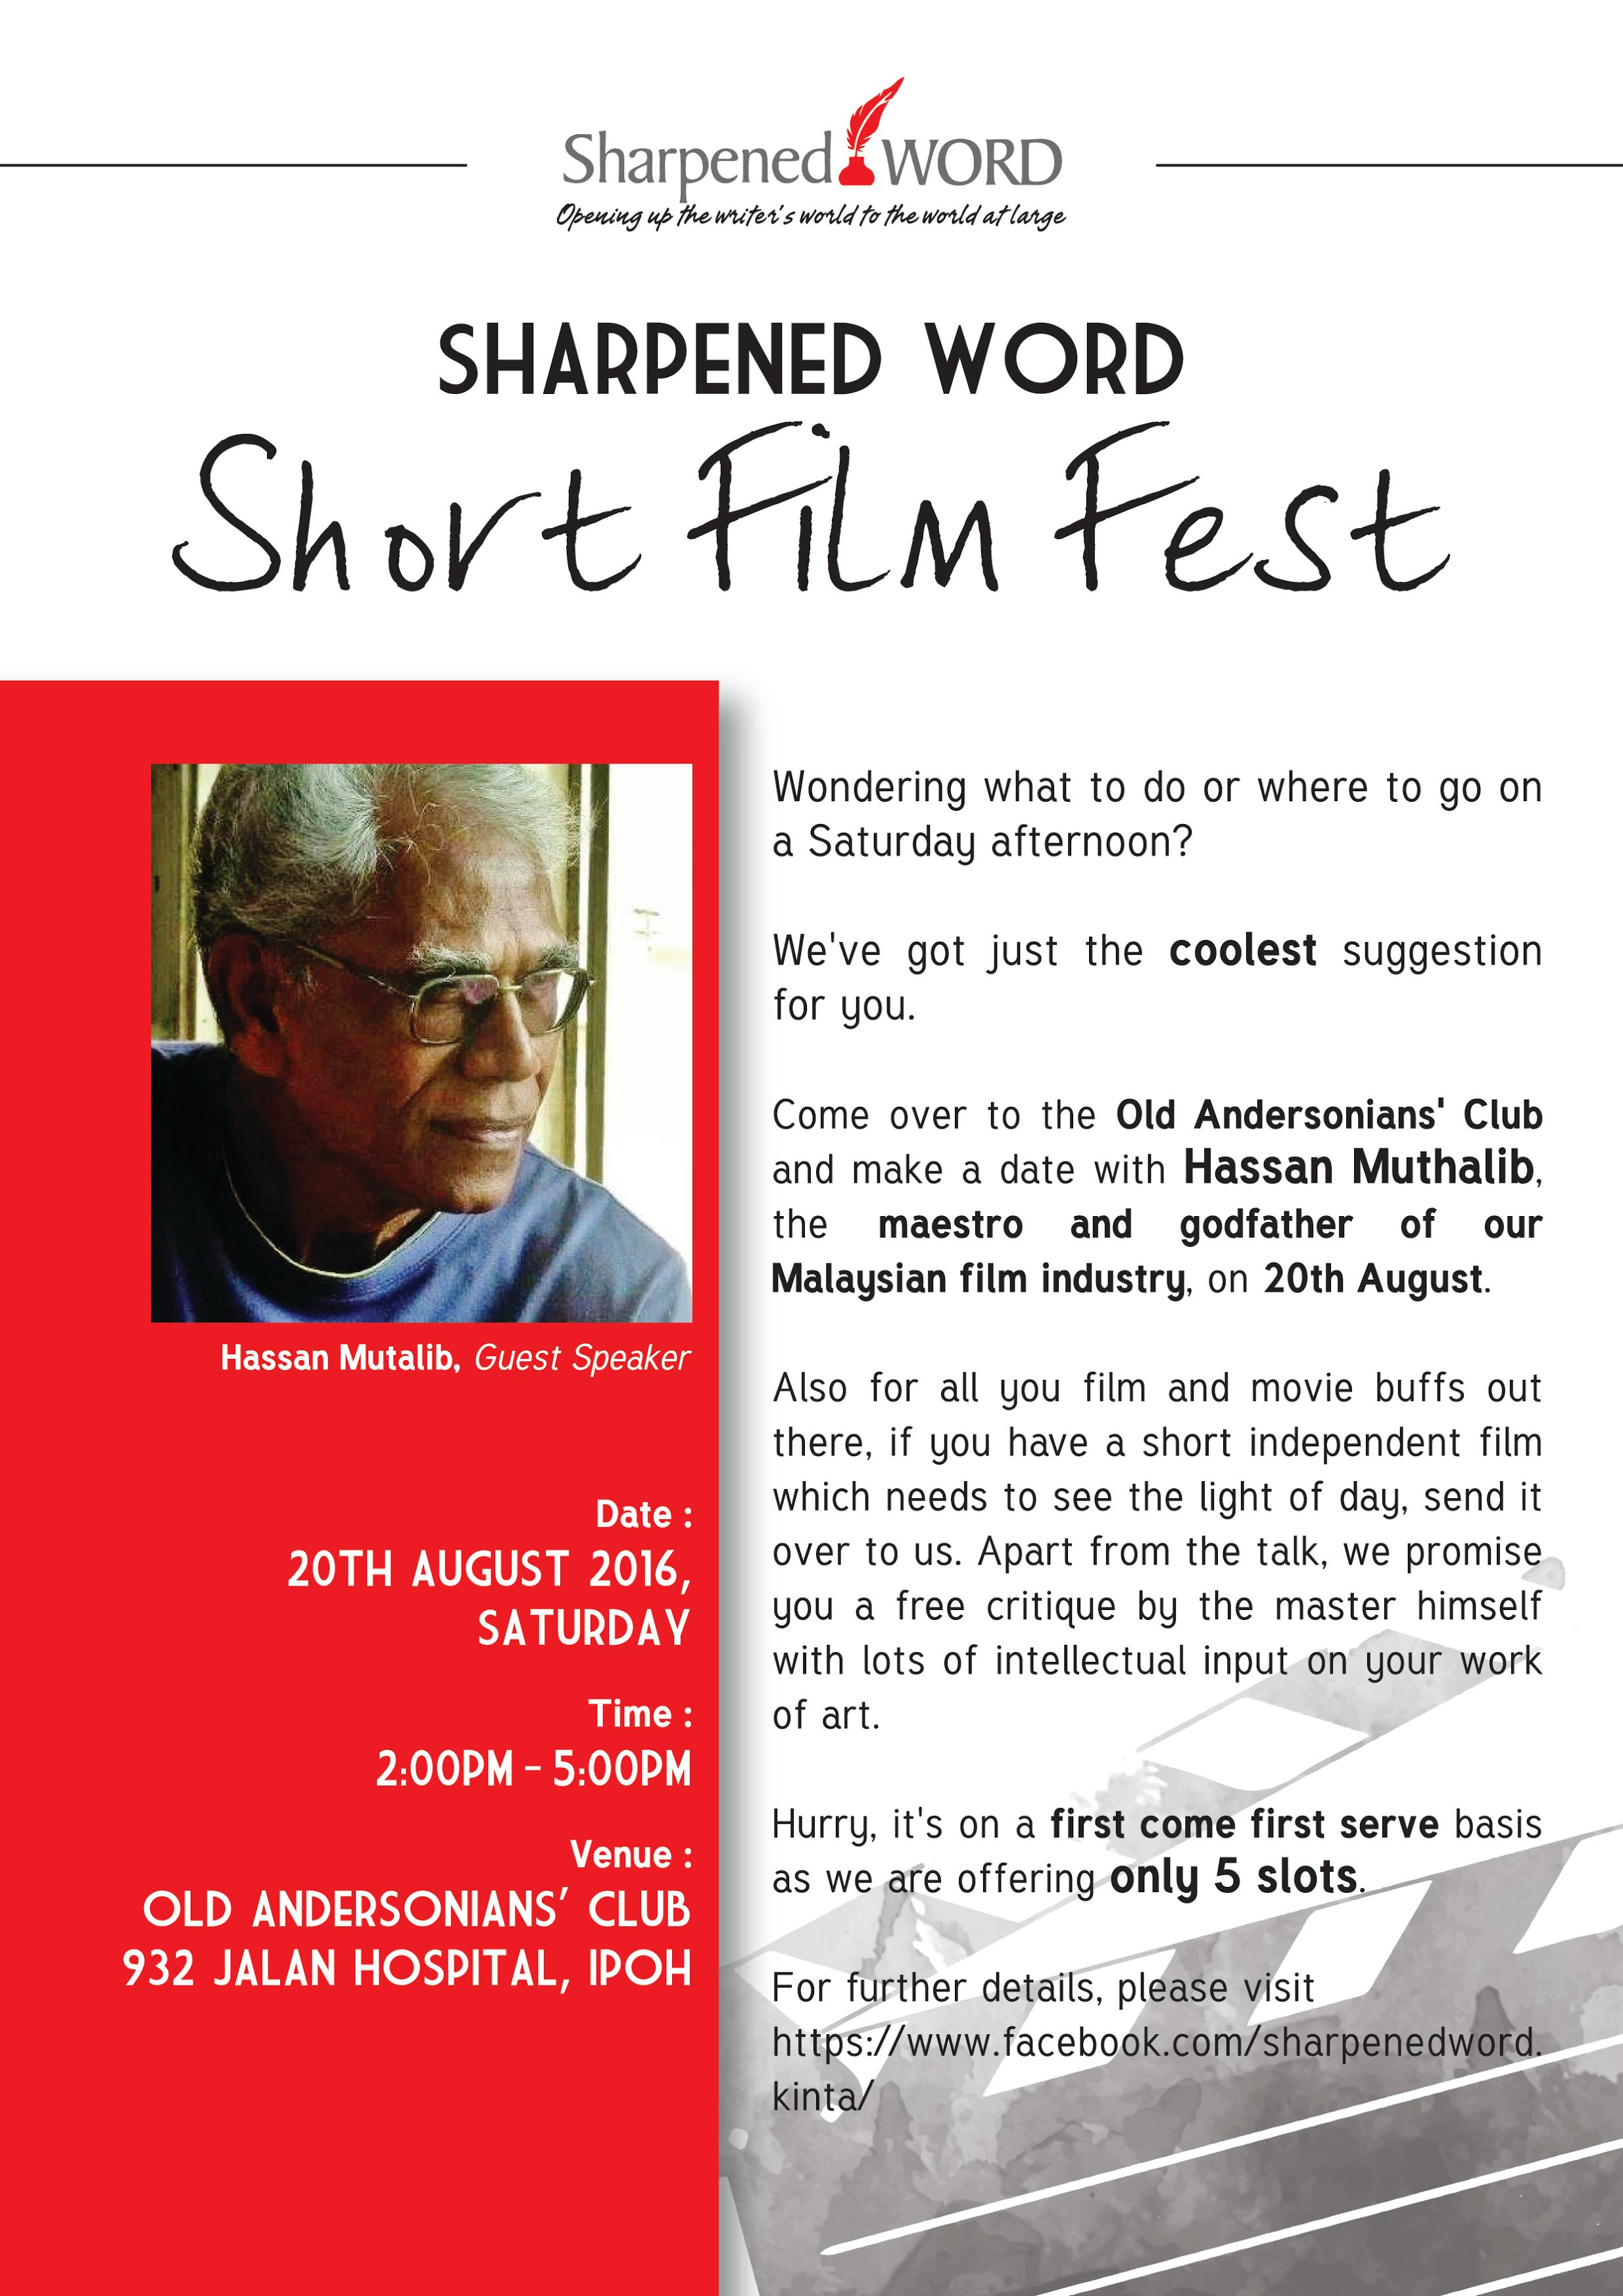 Sharpened Word Short Film Fest